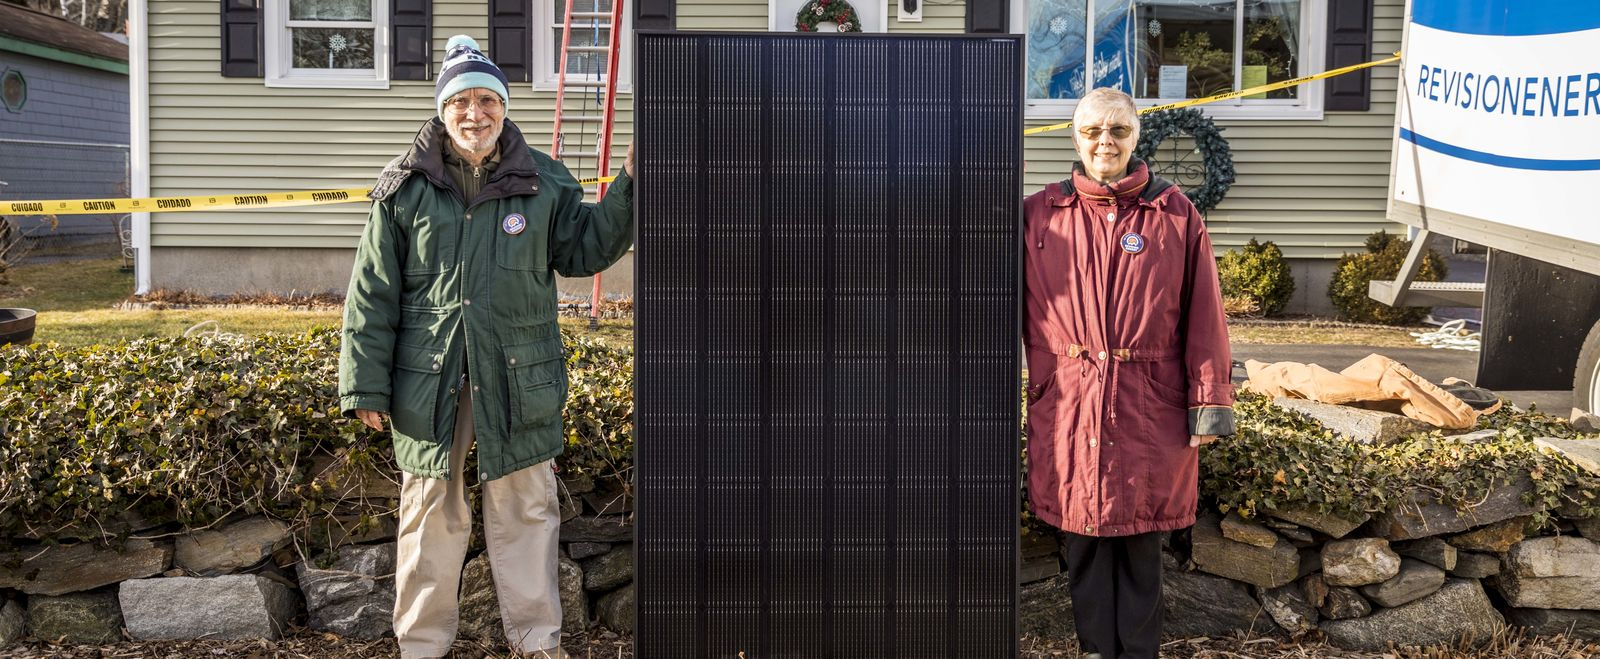 A couple poses with solar panels.